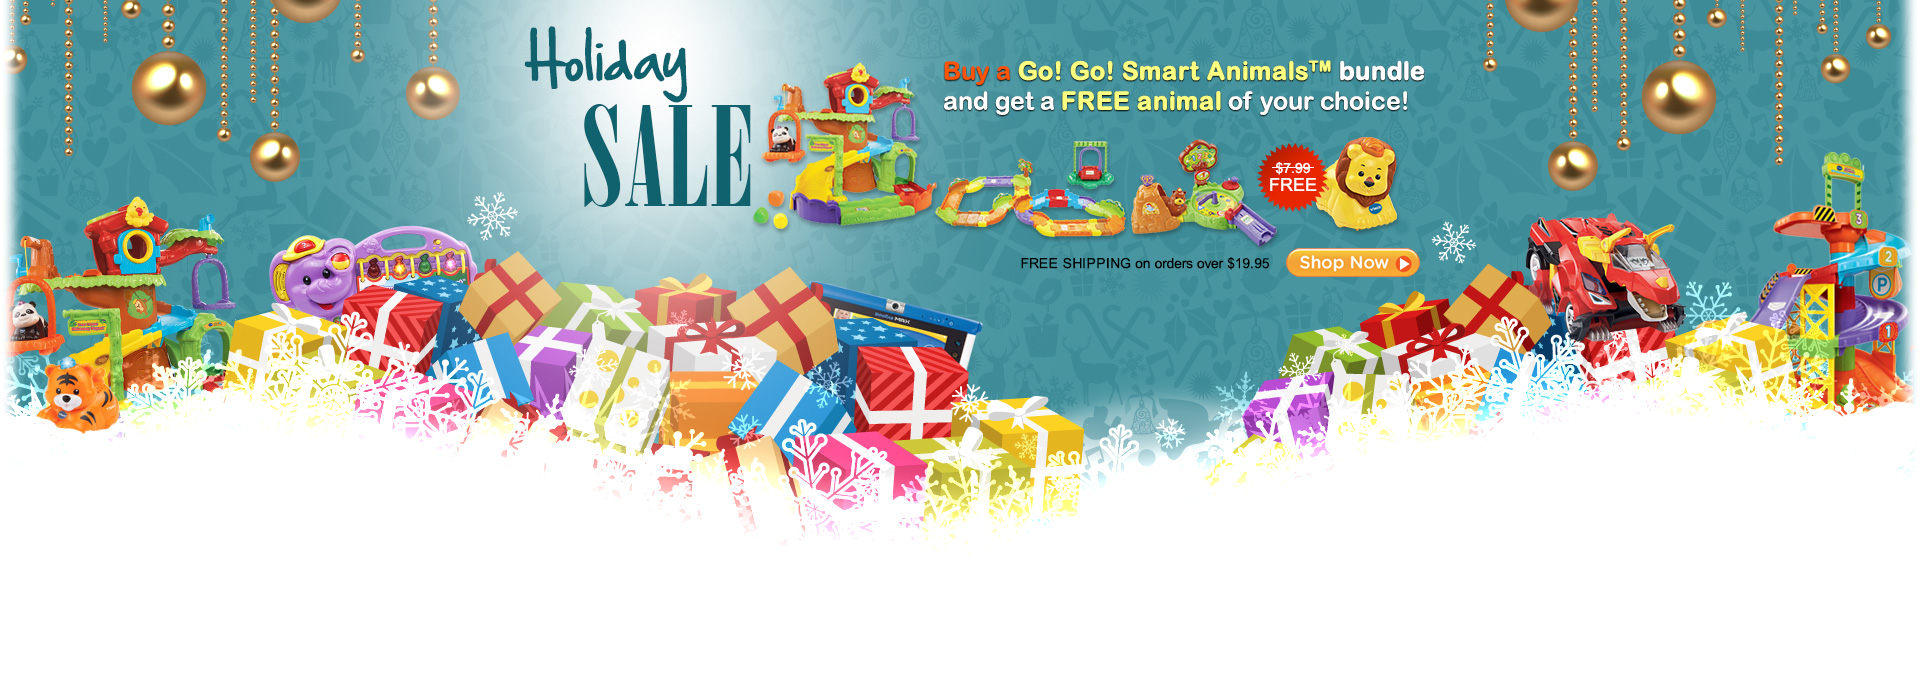 Thanksgiving SALE - Buy a Go! Go! Smart Animals bundle and get a FREE animal of your choice!